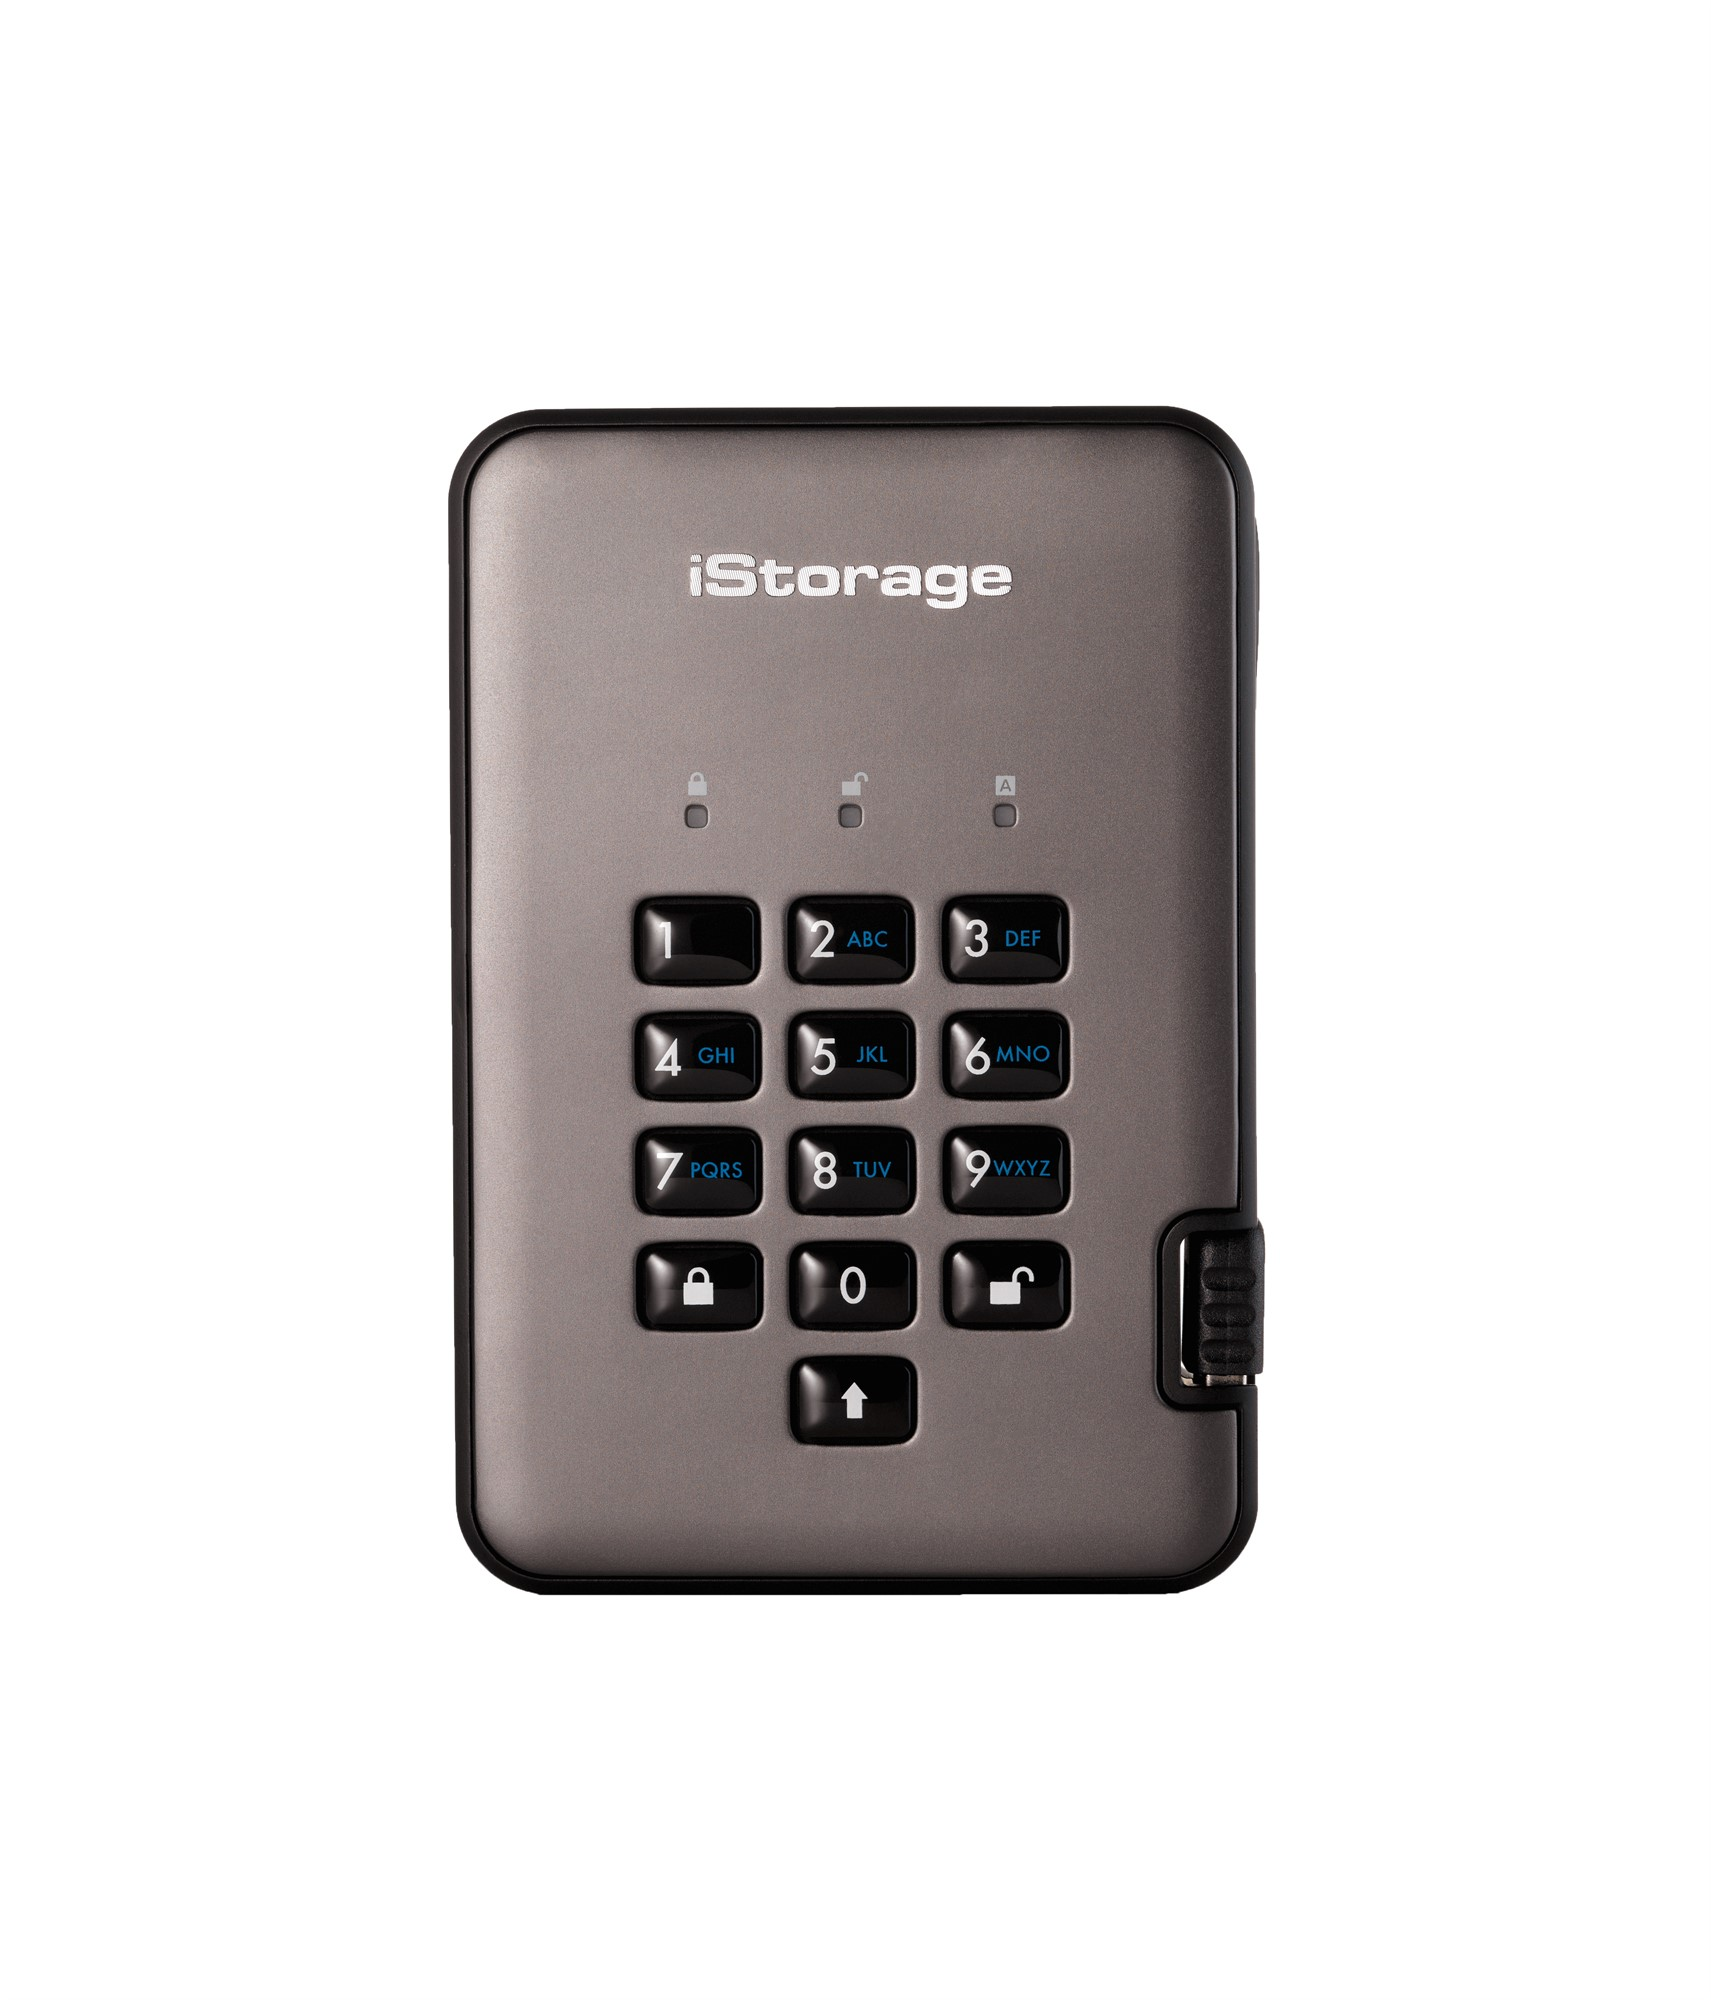 ISTORAGE IS-DAP2-256-1000-C-G DISKASHUR PRO2 1000GB BLACK, GRAPHITE EXTERNAL HARD DRIVE